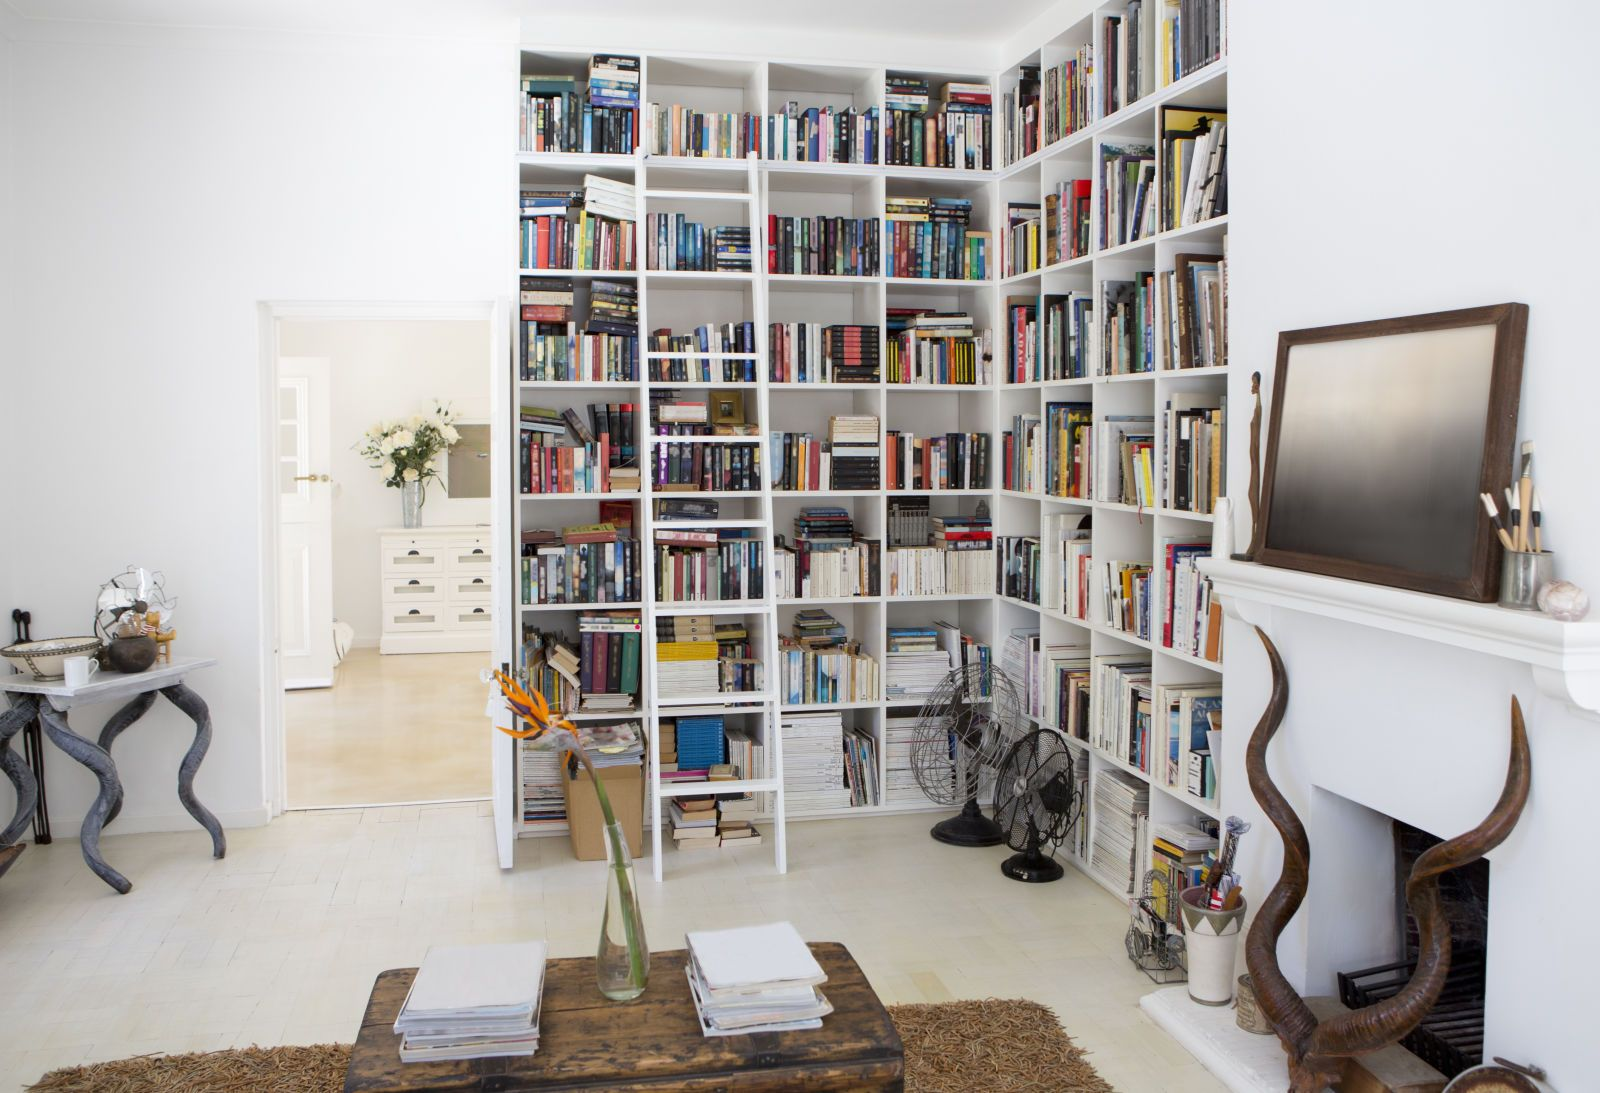 12 Ways to Make Your Home More Peaceful   Home, Home libraries ...